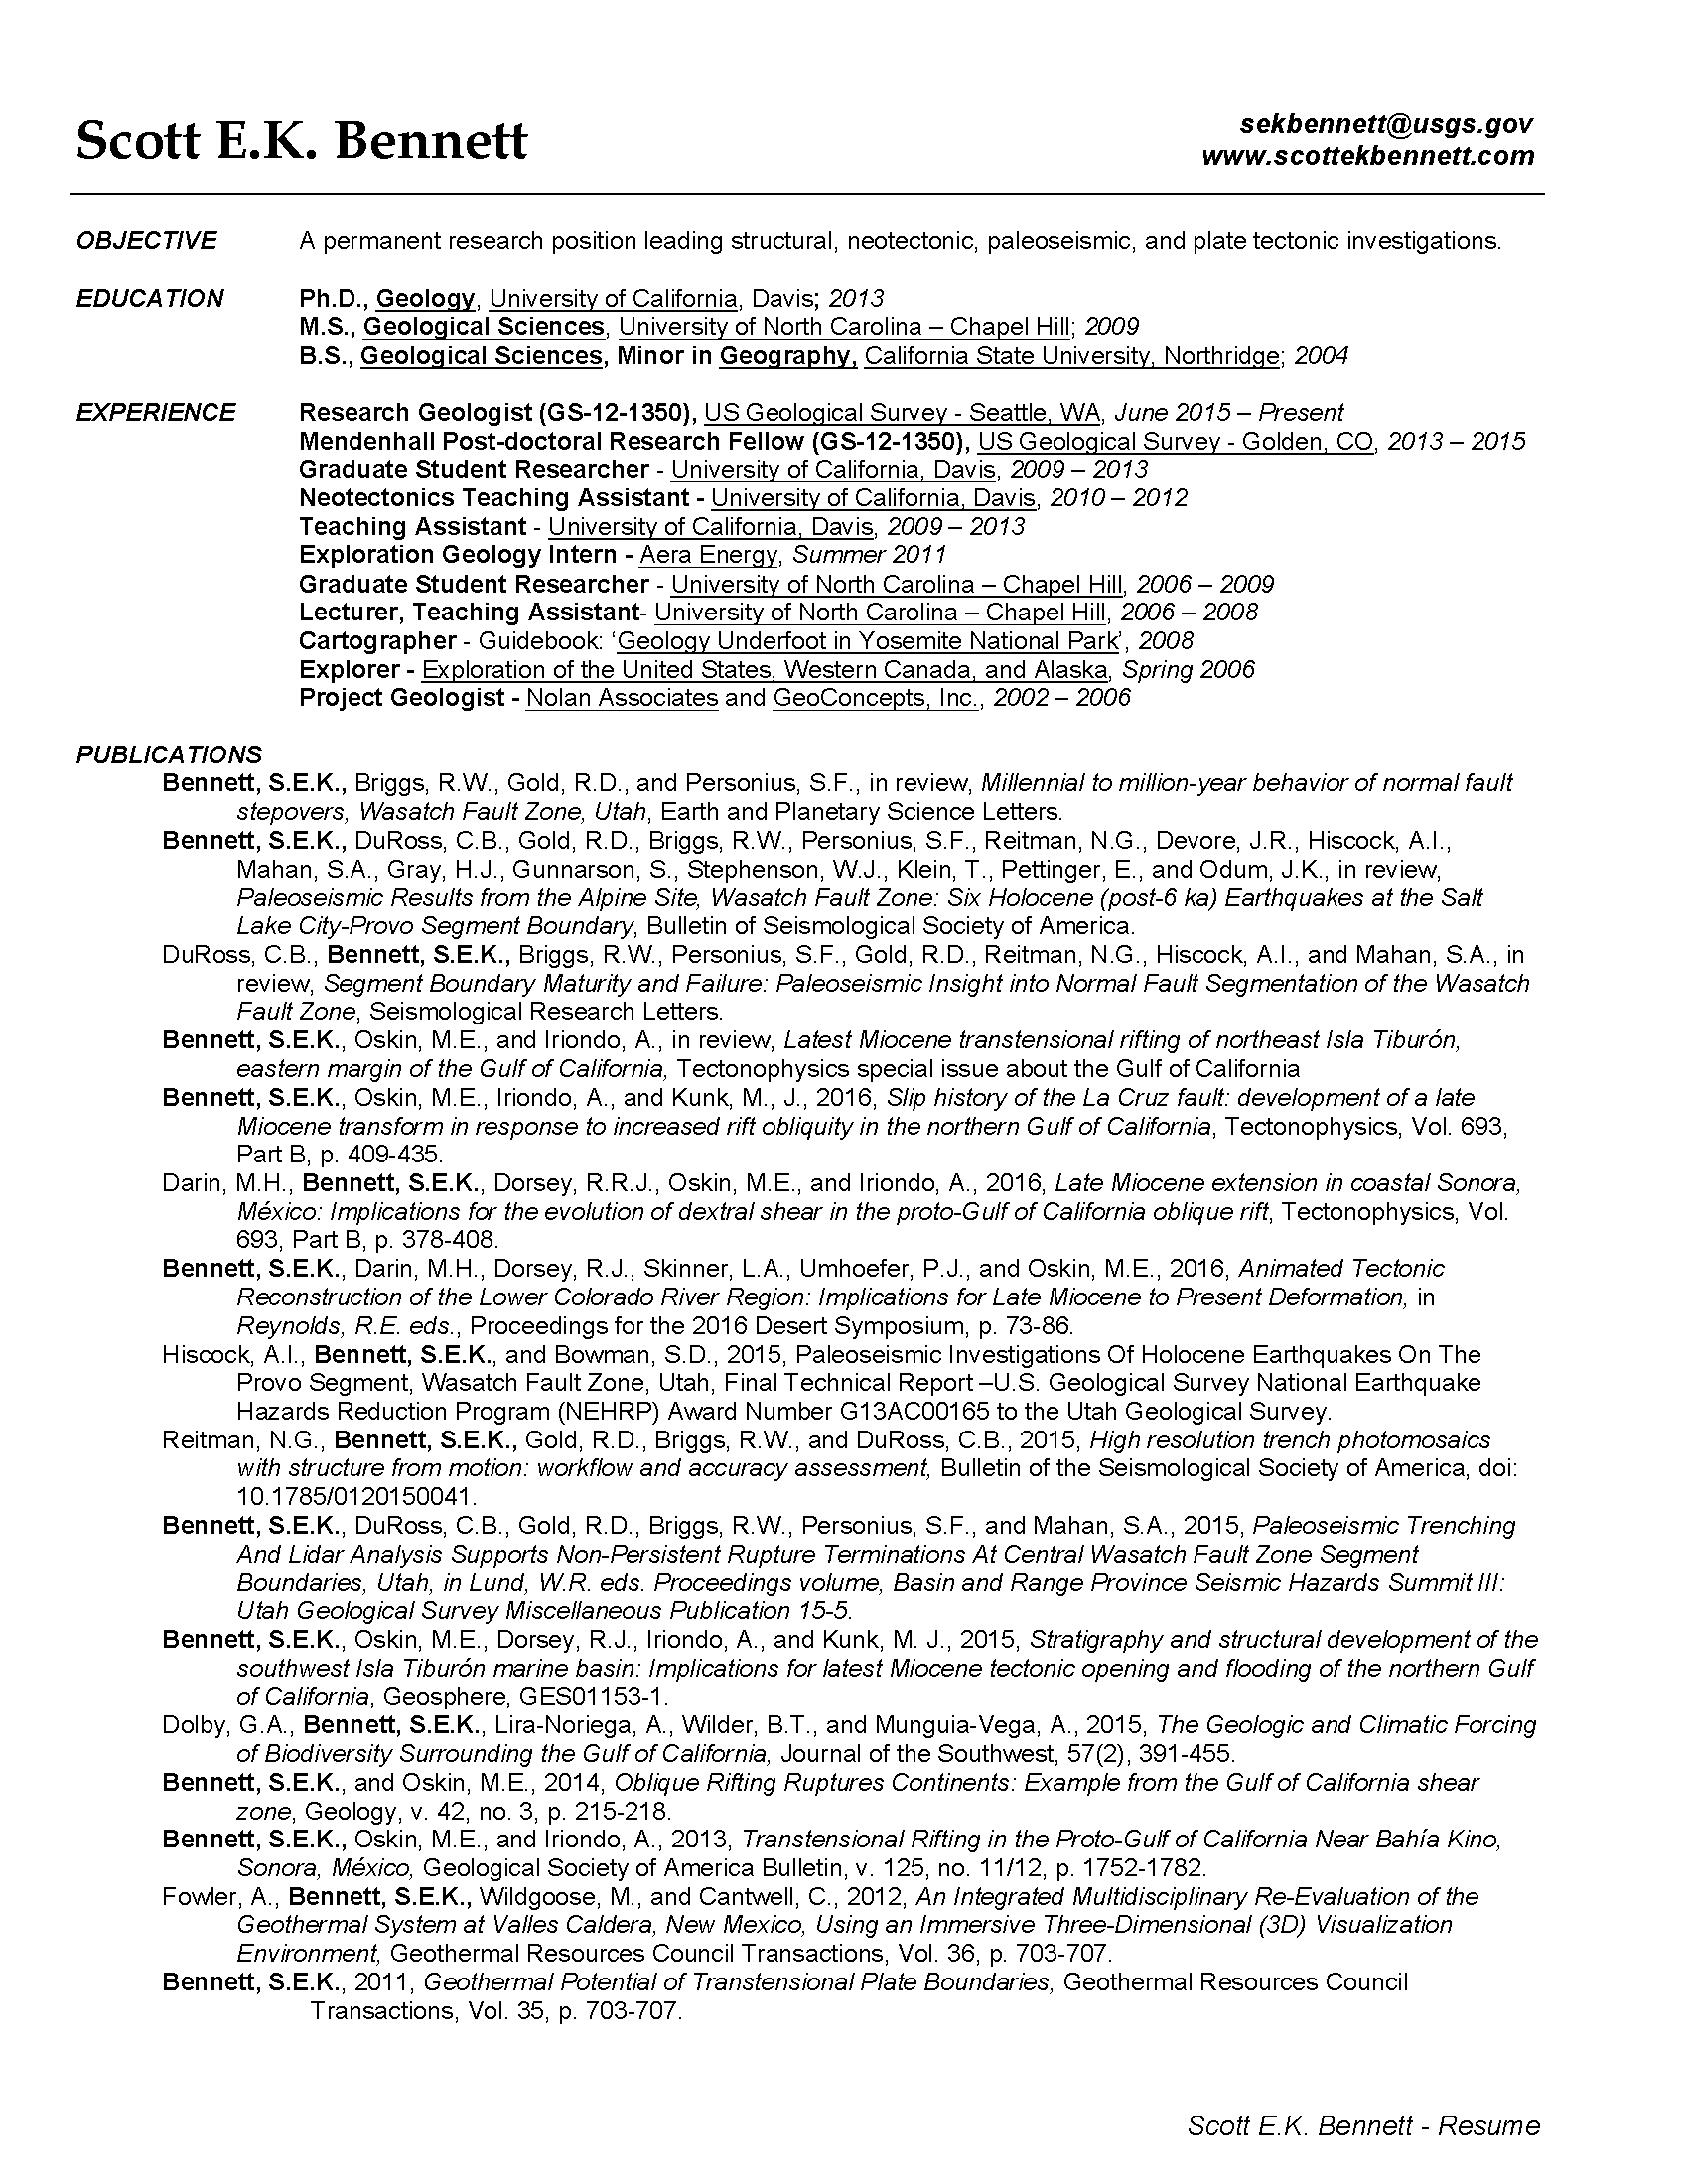 Click to download Scott's Resume (2 pages)